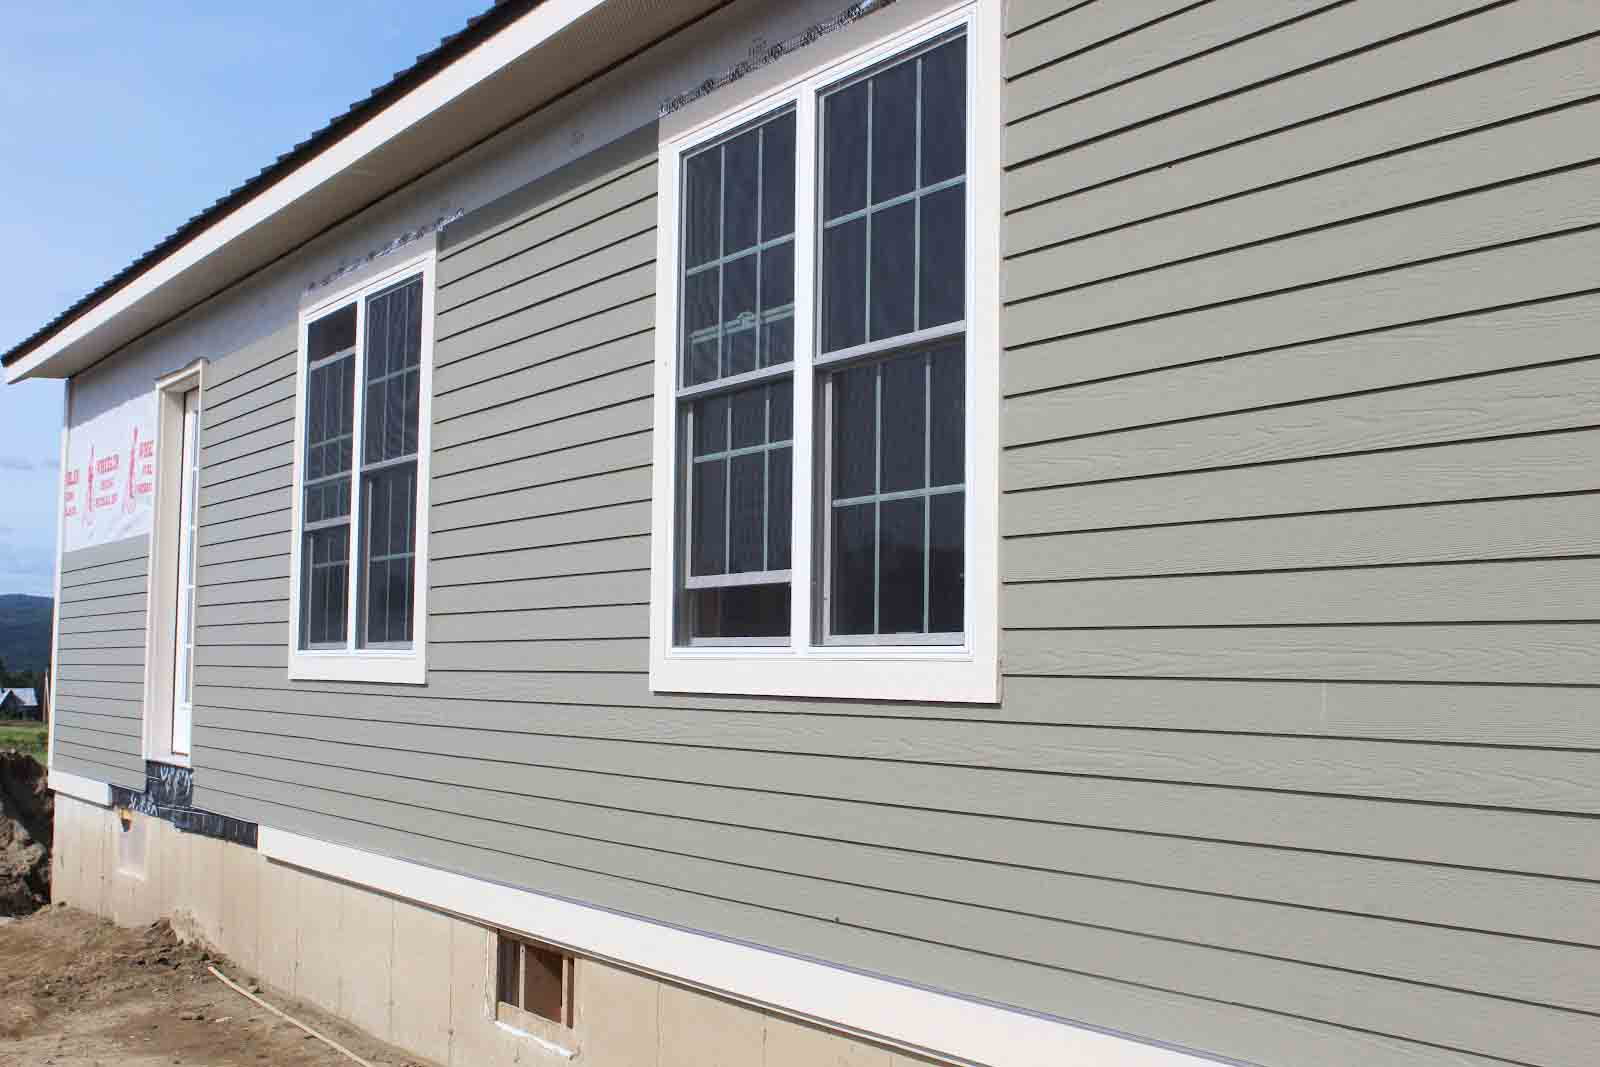 Cement Board Panels : Helping people protect their most valuable asset siding